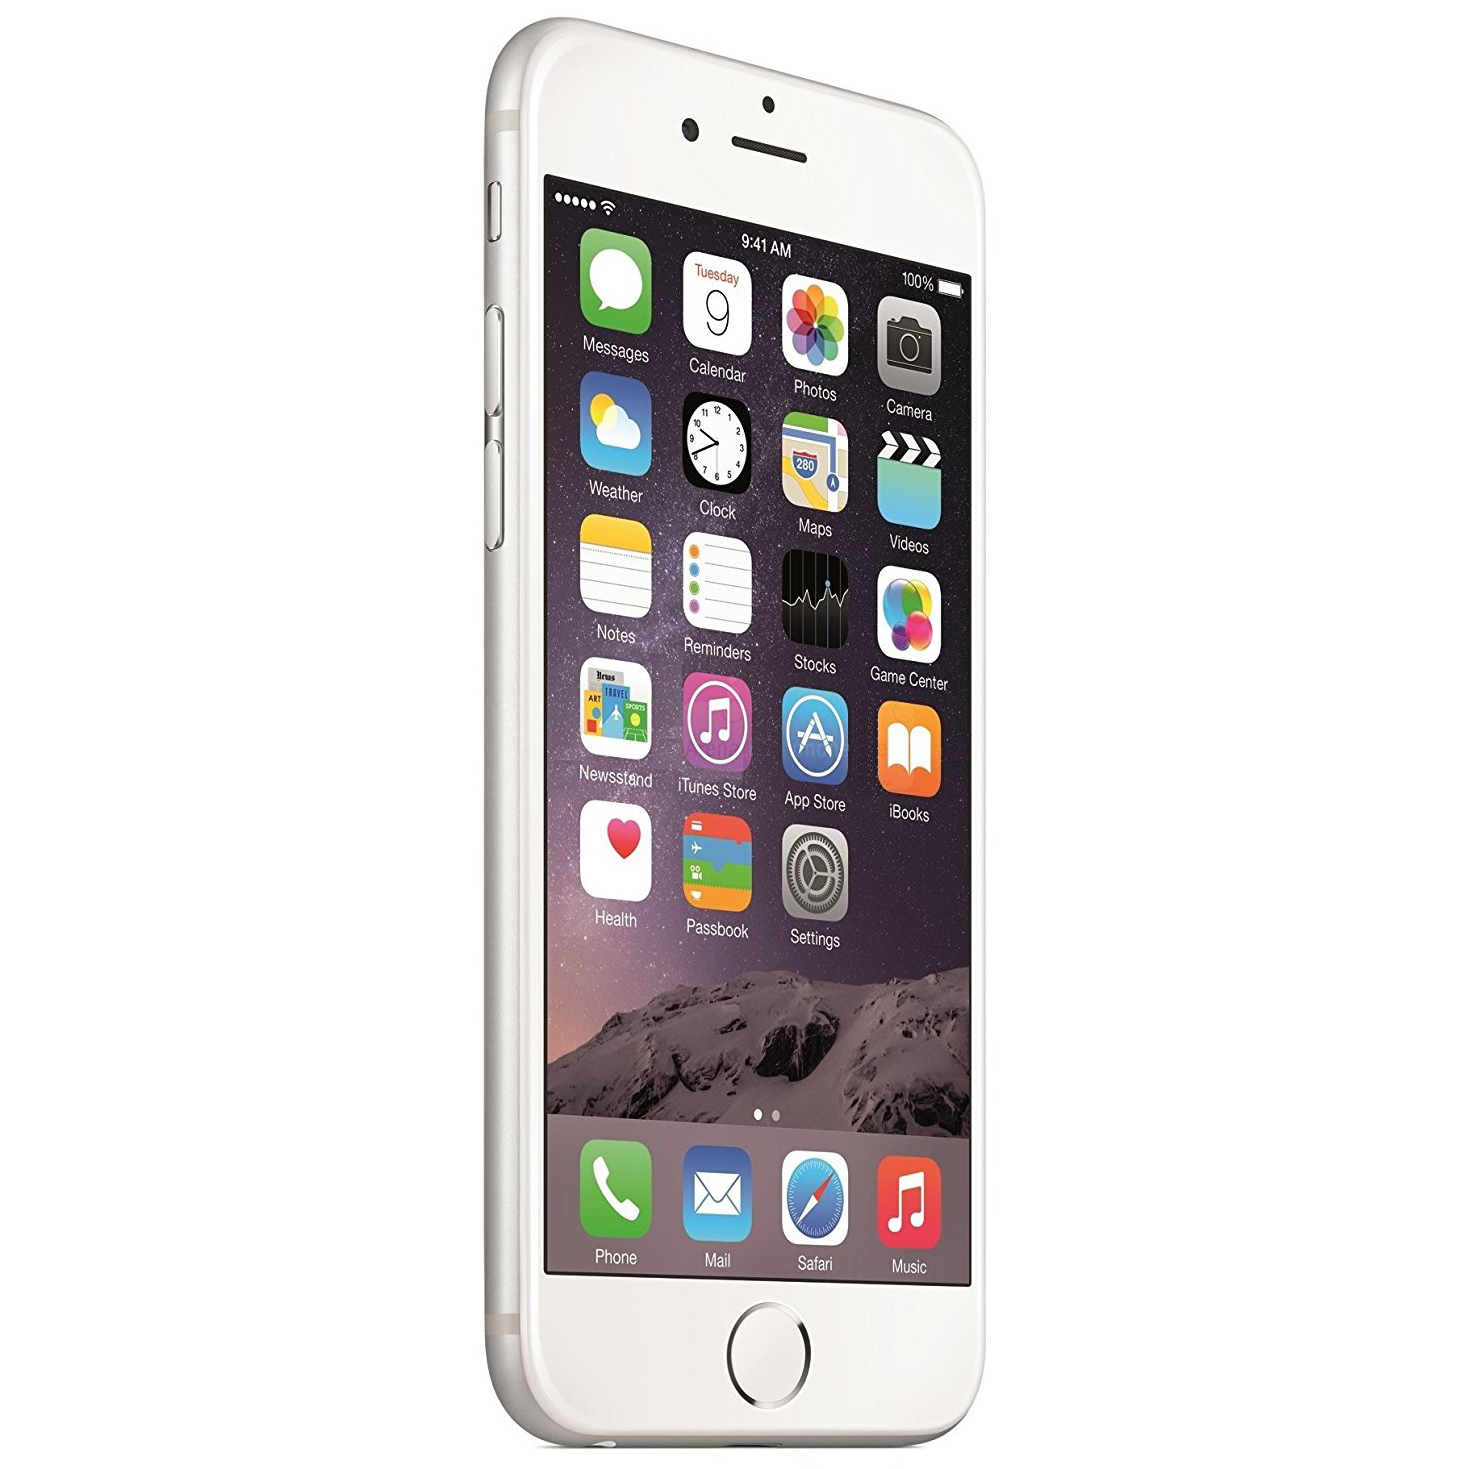 apple iphone 6 16gb gsm unlocked 4g lte smartphone w free selfie stick tanga. Black Bedroom Furniture Sets. Home Design Ideas